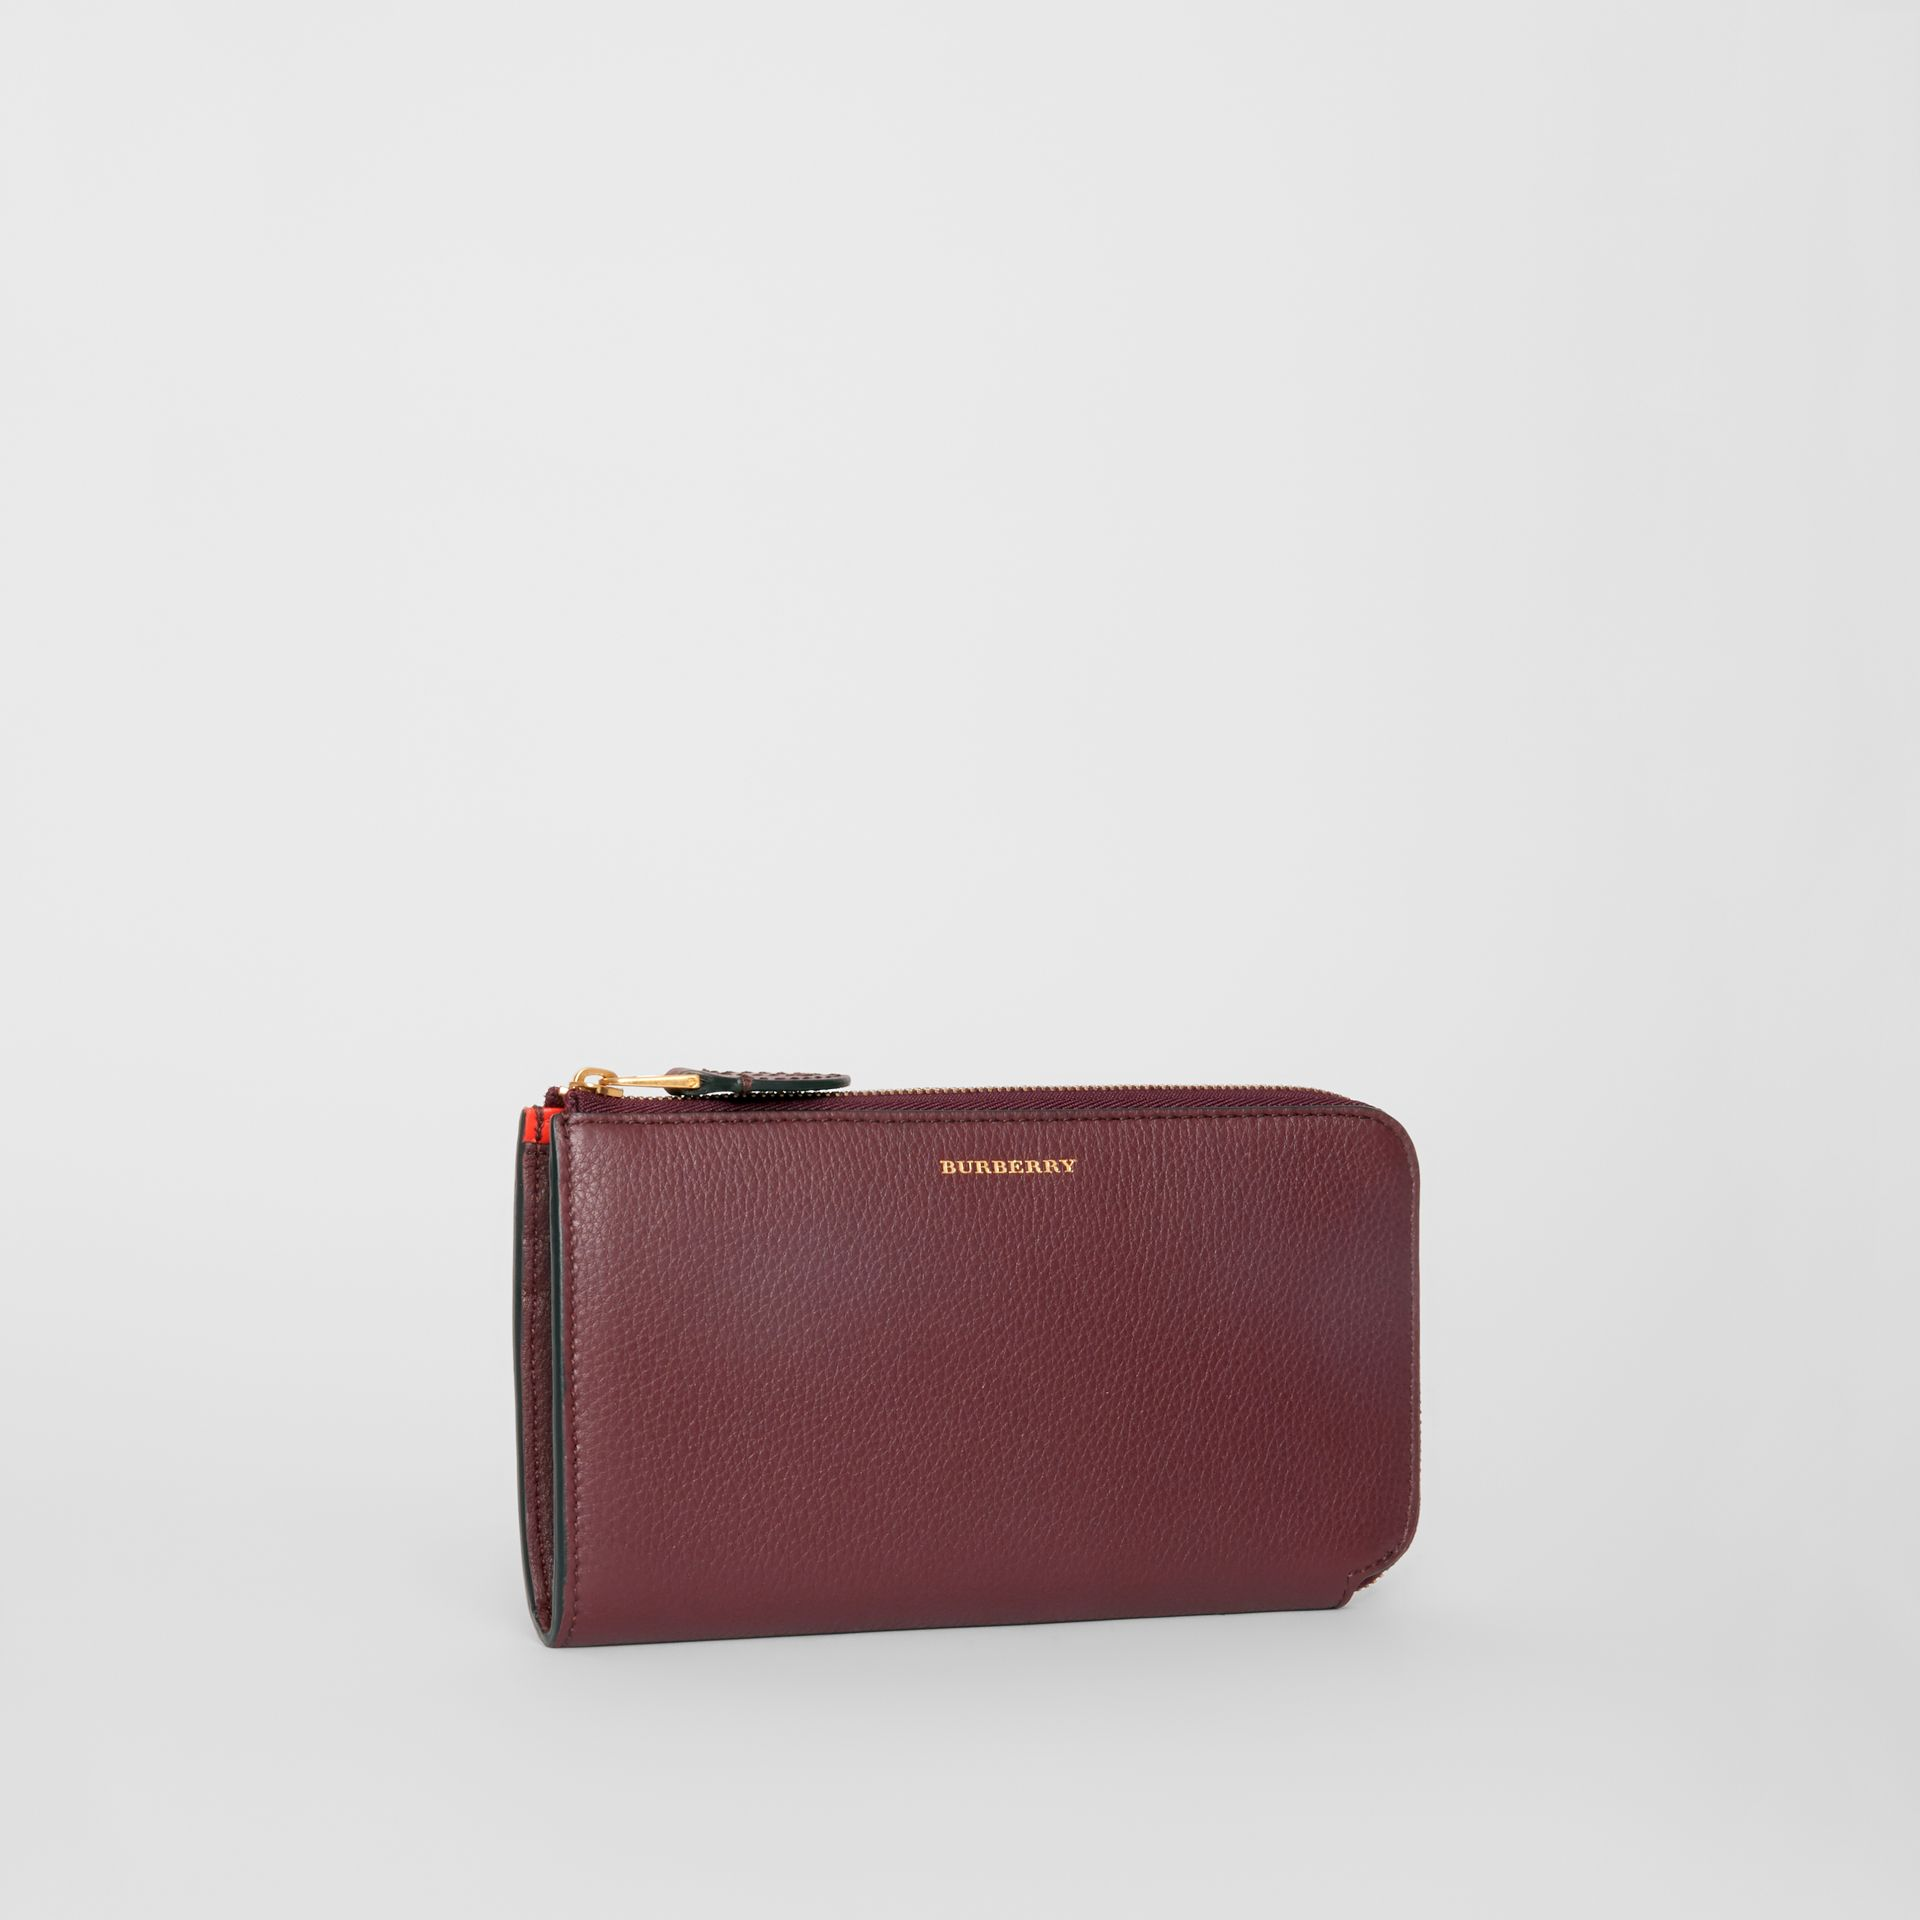 Two-tone Leather Ziparound Wallet and Coin Case in Deep Claret - Women | Burberry - gallery image 4